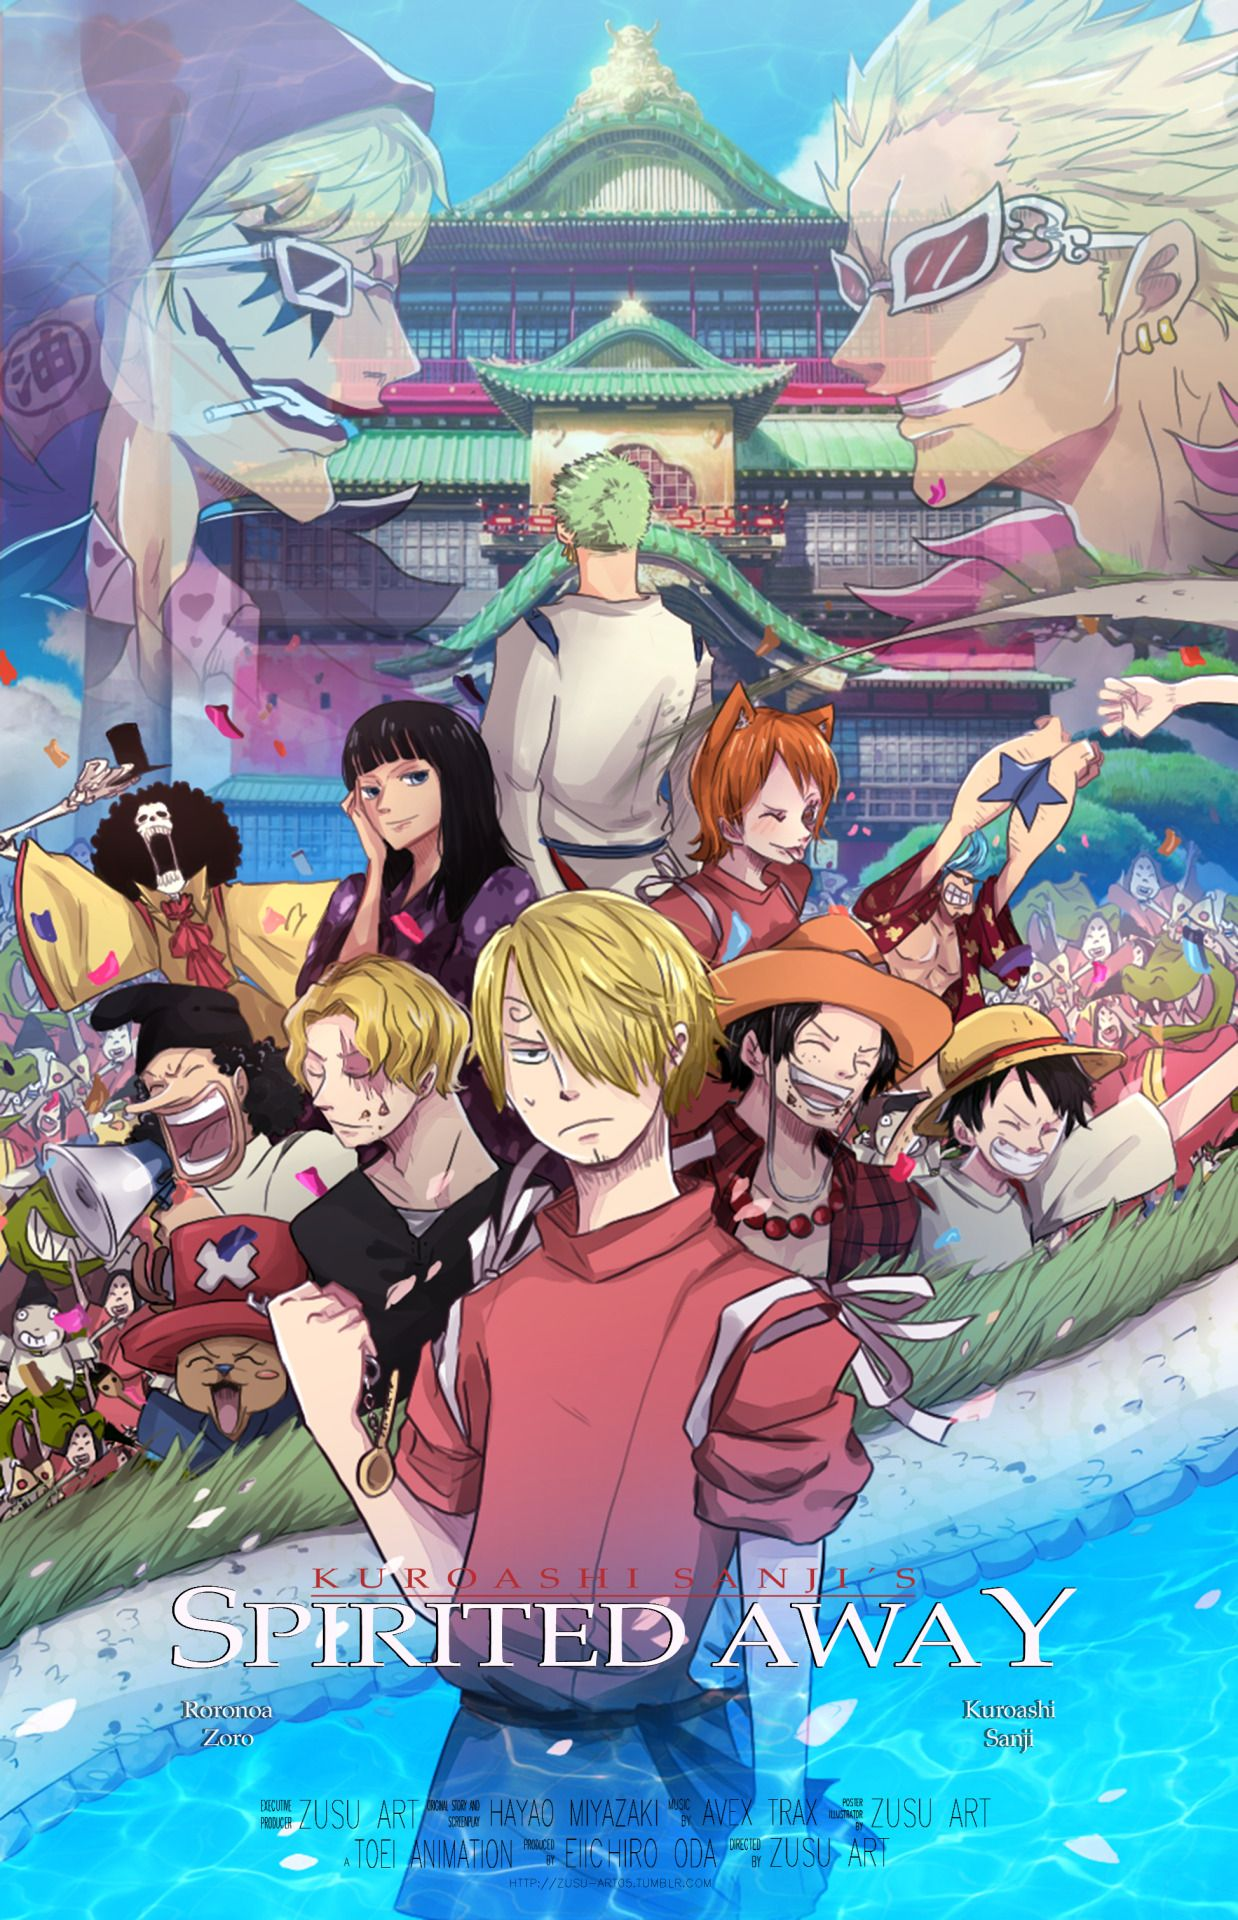 Crossover One Piece + Spirited Away AU…!! Film poster